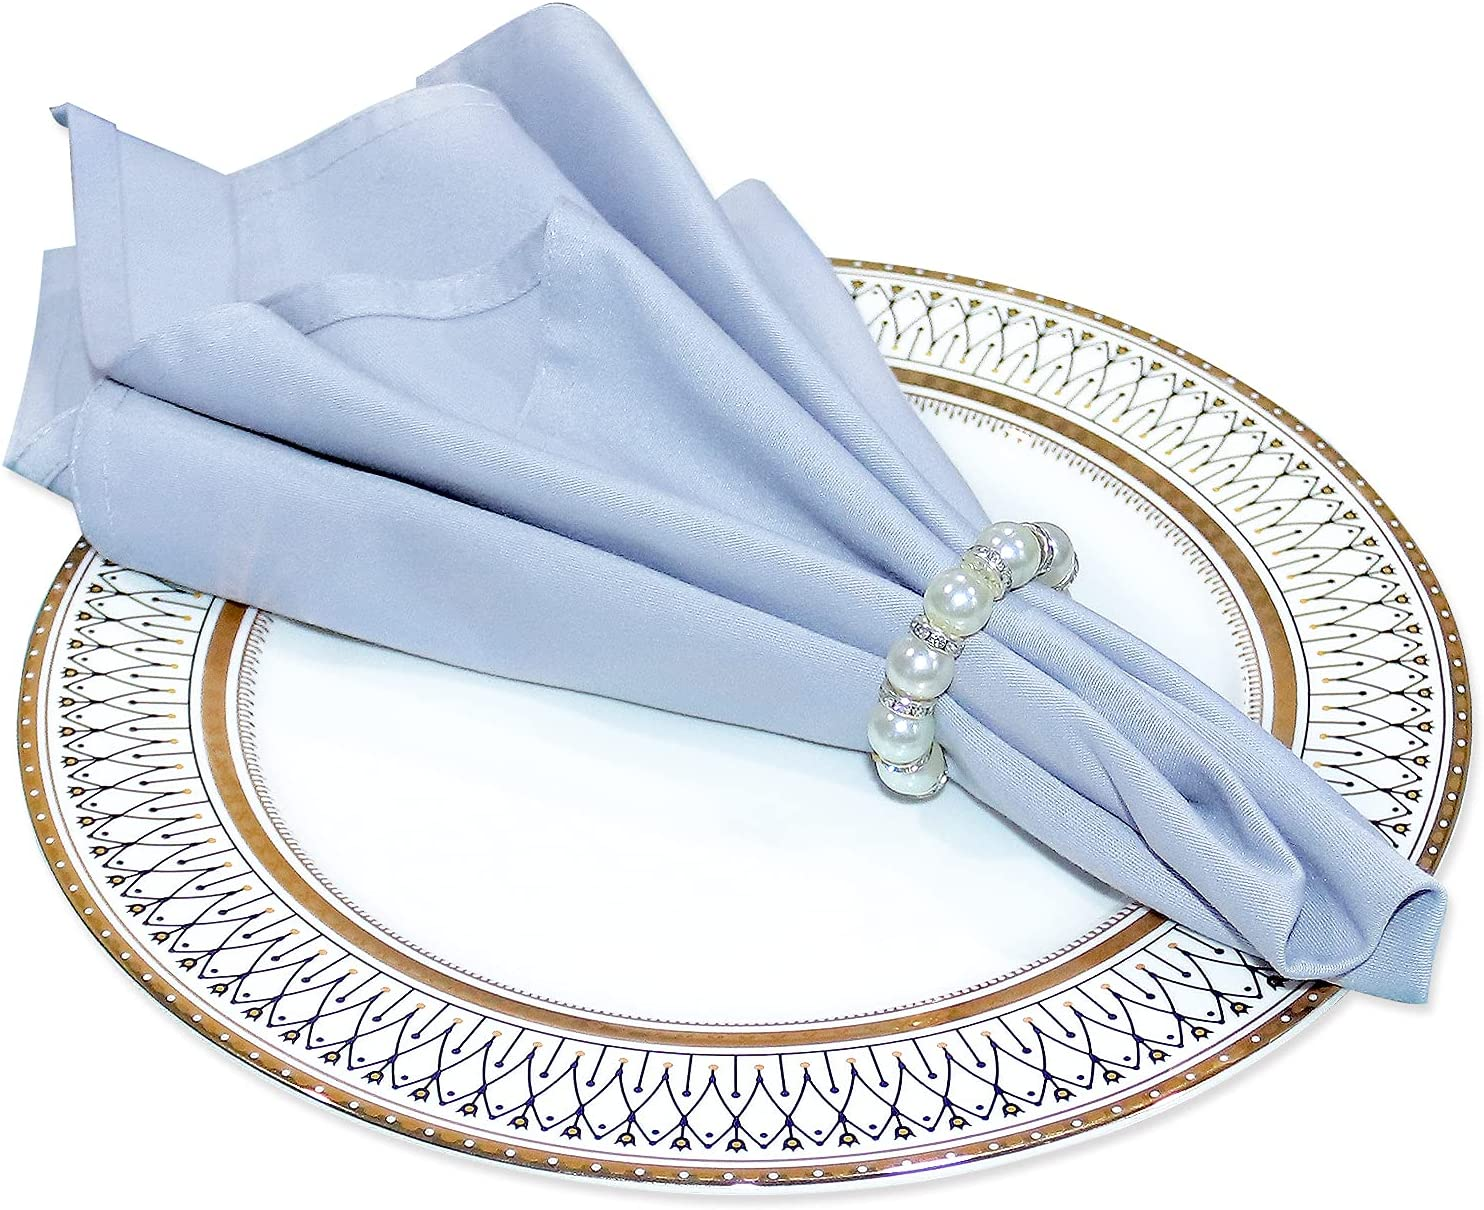 YUESUO Pearl Napkin Rings Set Holder New Shipping Free Ring of Ultra-Cheap Deals for 12,Napkin